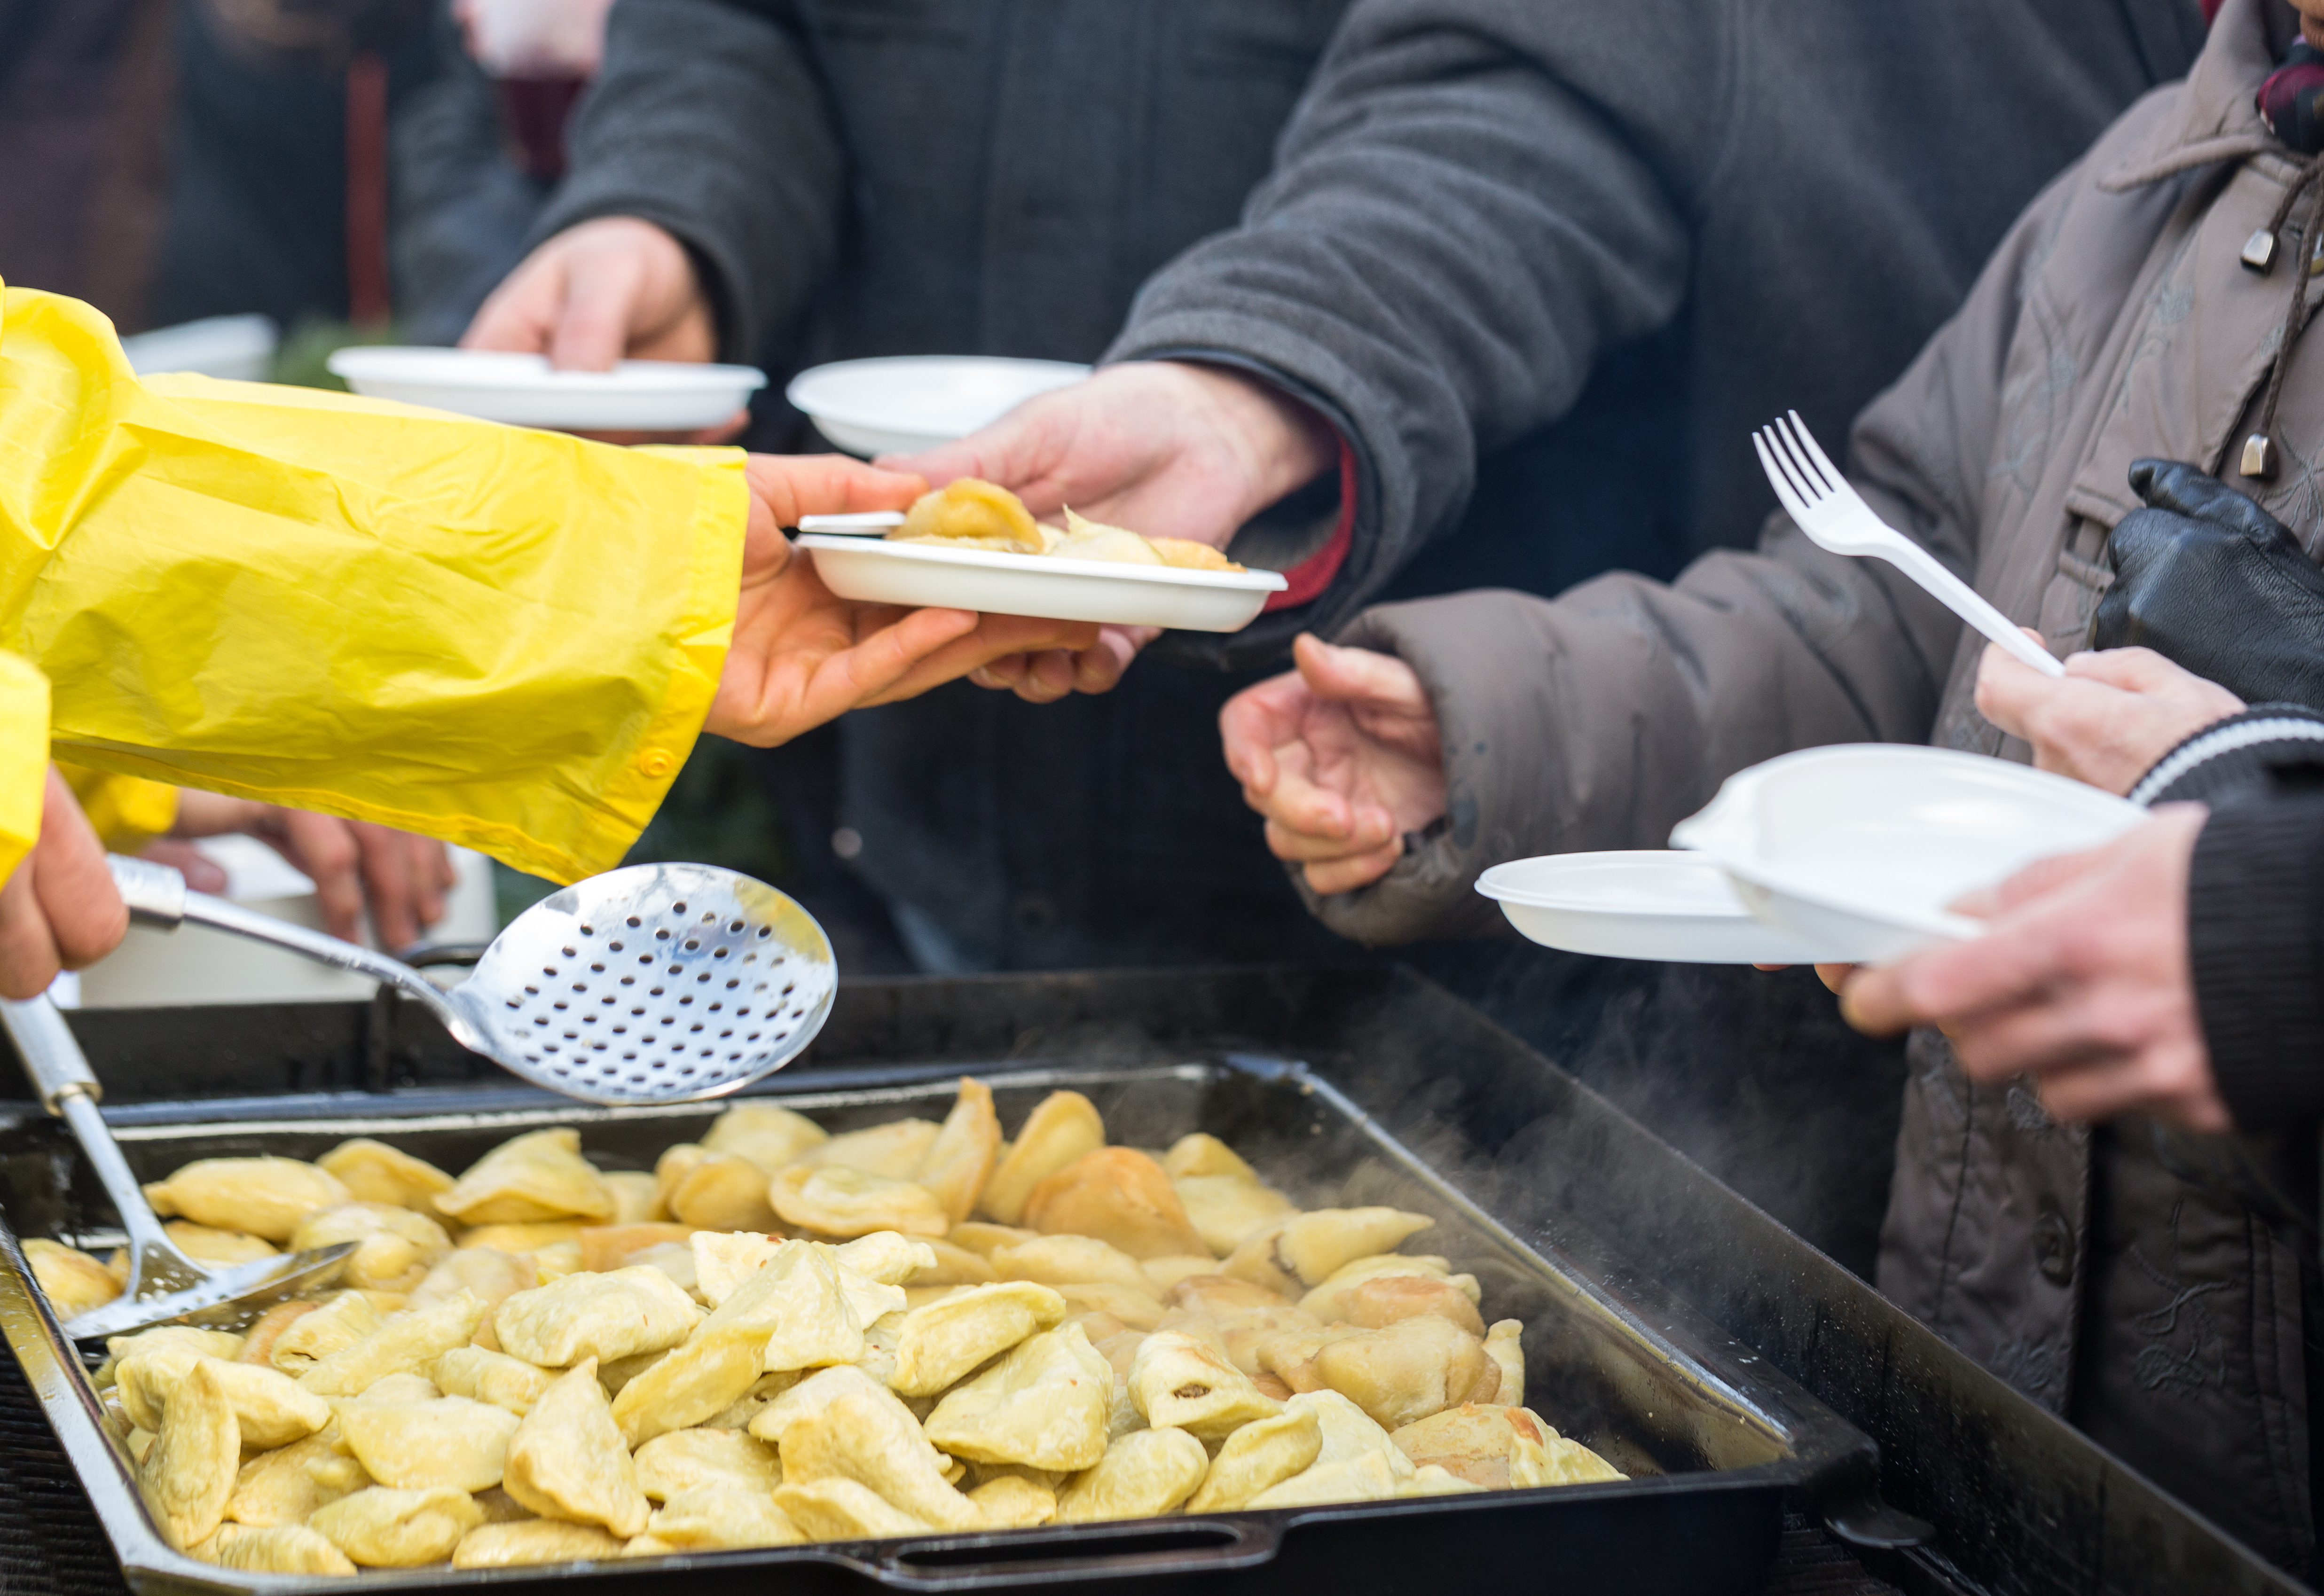 FOOD BANKS, FOOD KITCHENS TO SUPPORT